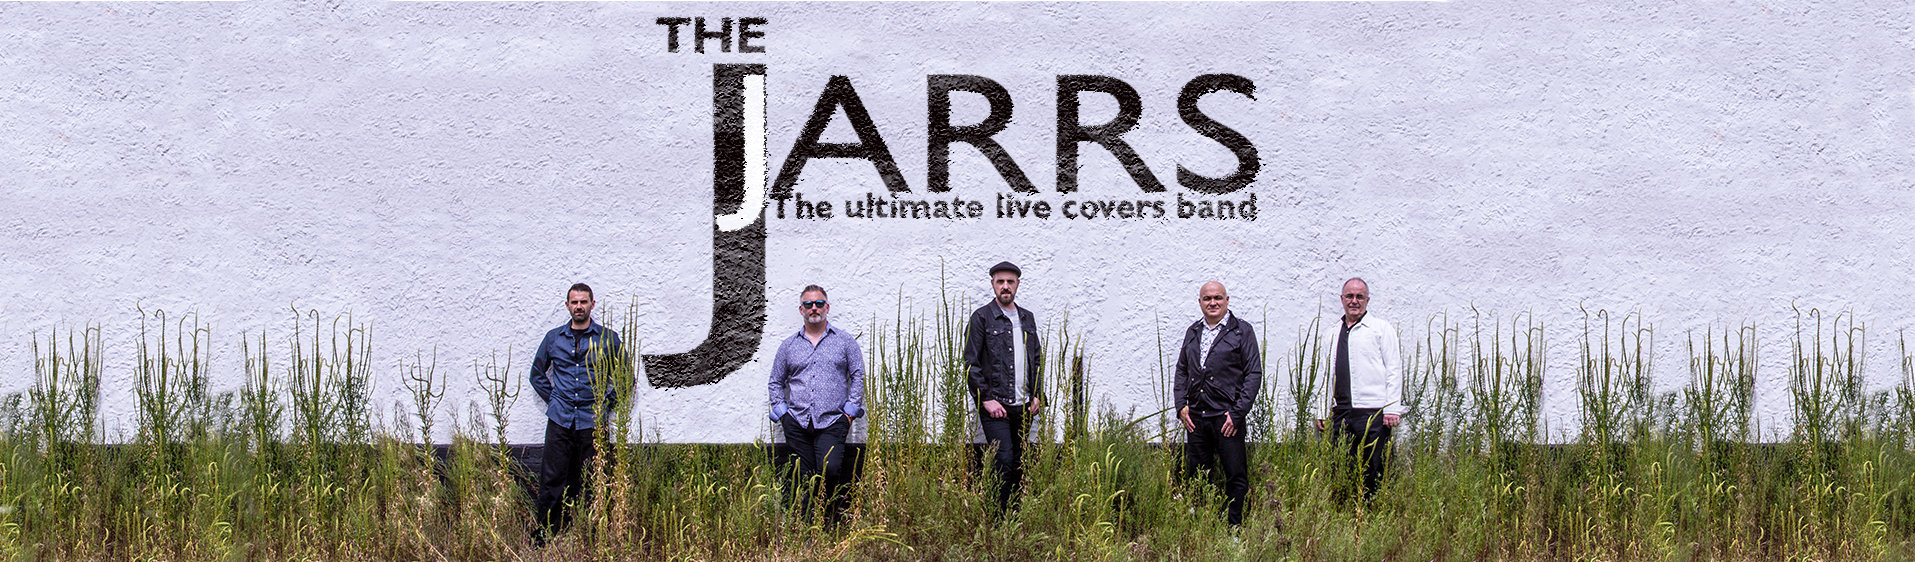 The Jjarrs - The Ultimate Live Wedding Band in Hertfordshire